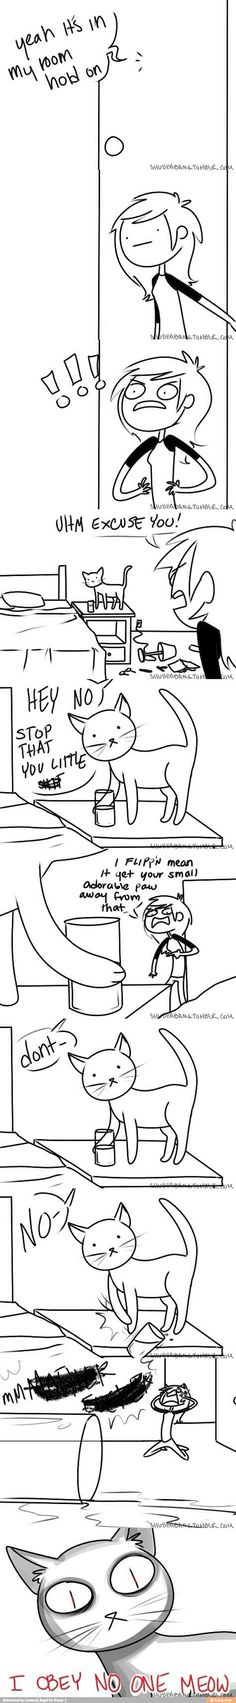 Thats how those little spawns of Satan are!! But cats are adorable so they're easy to forgive